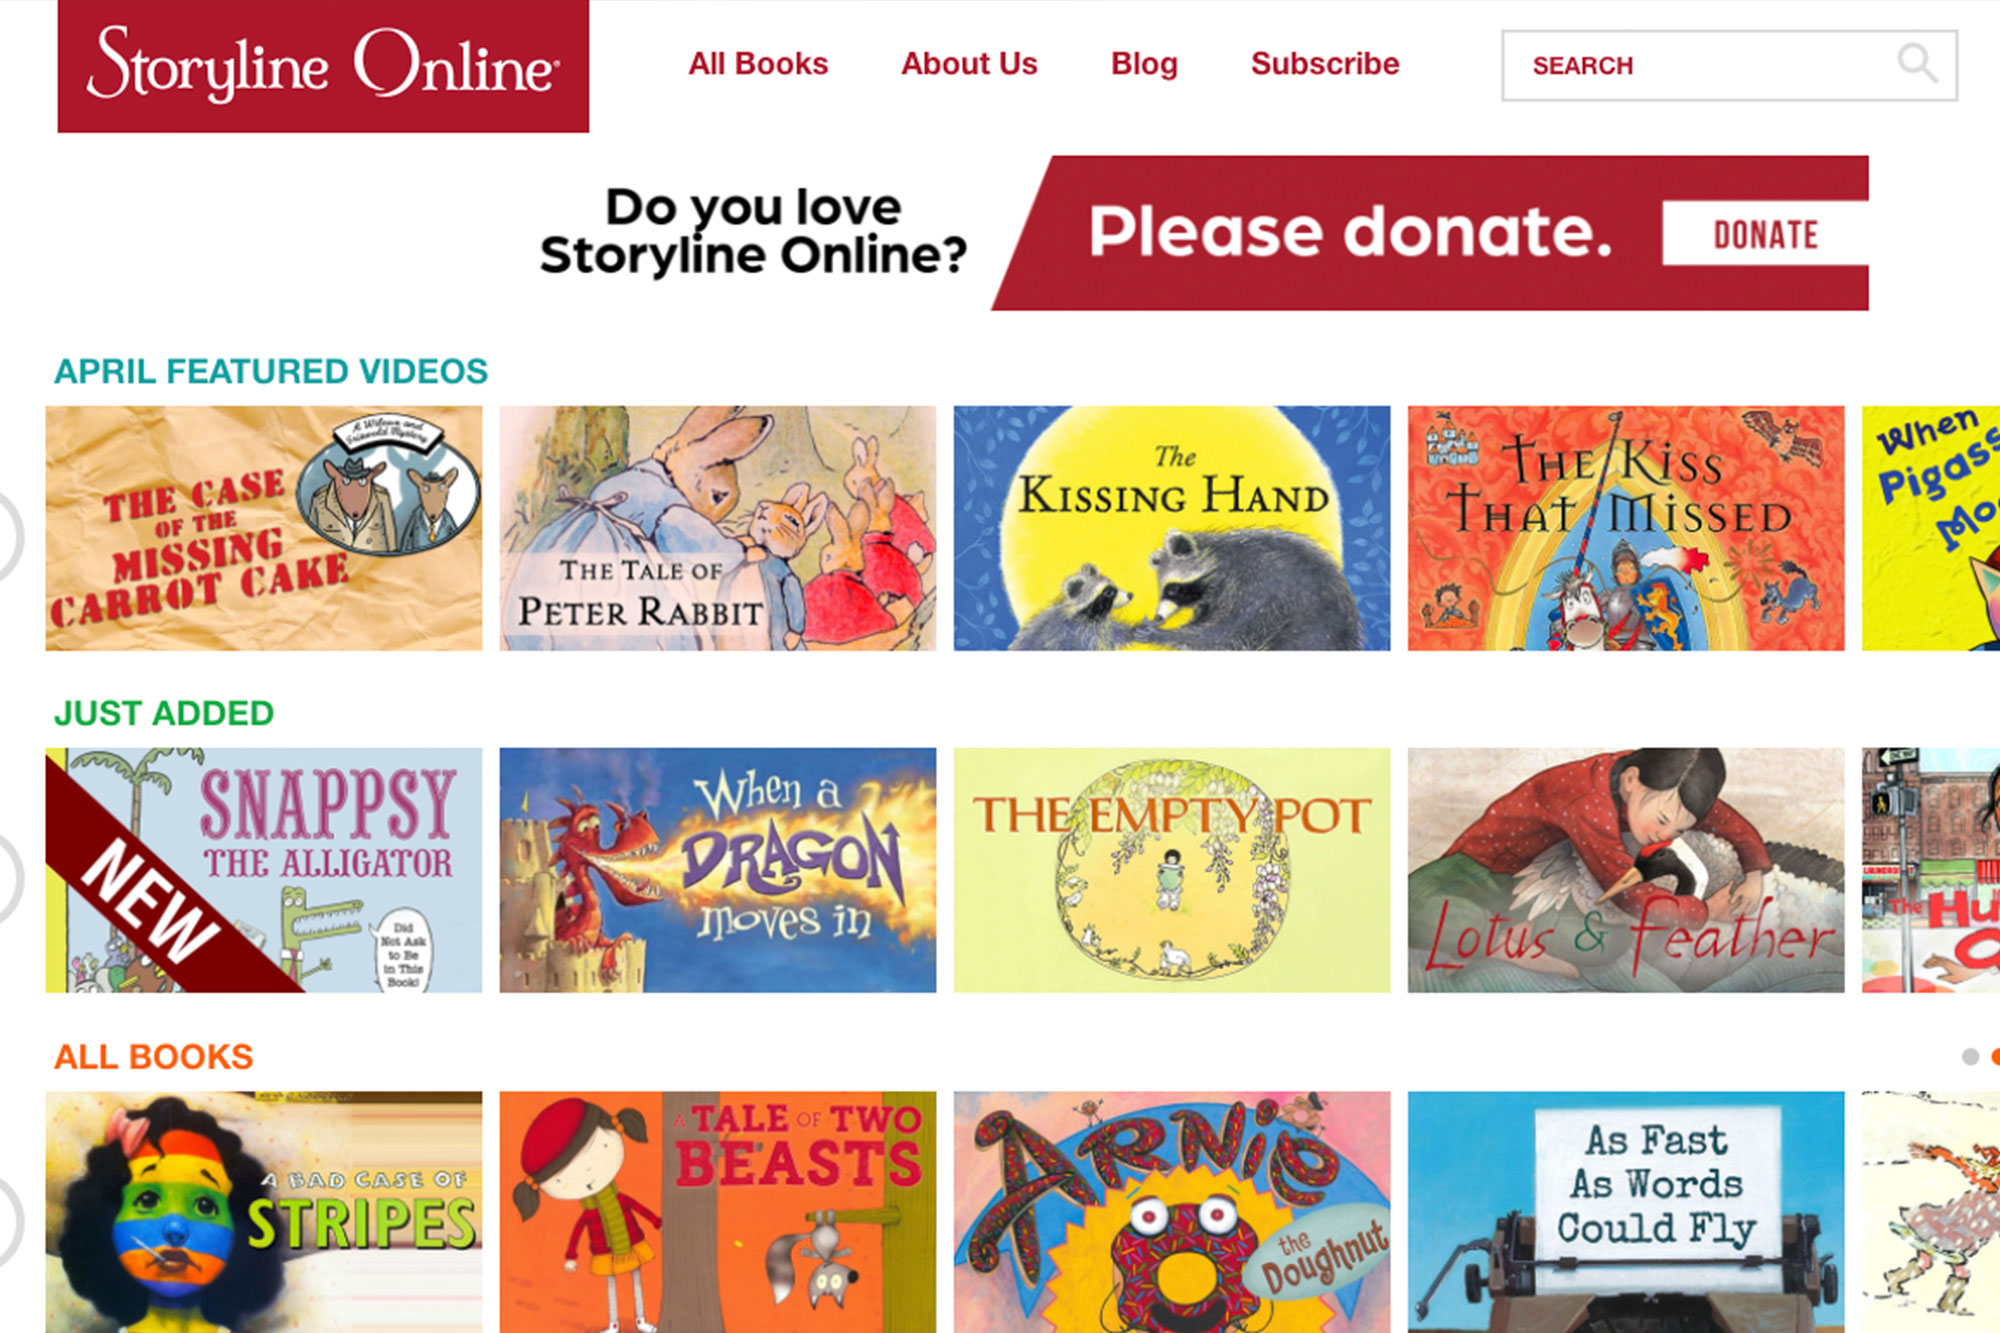 Storyline Online - Great Online Resources for Reading